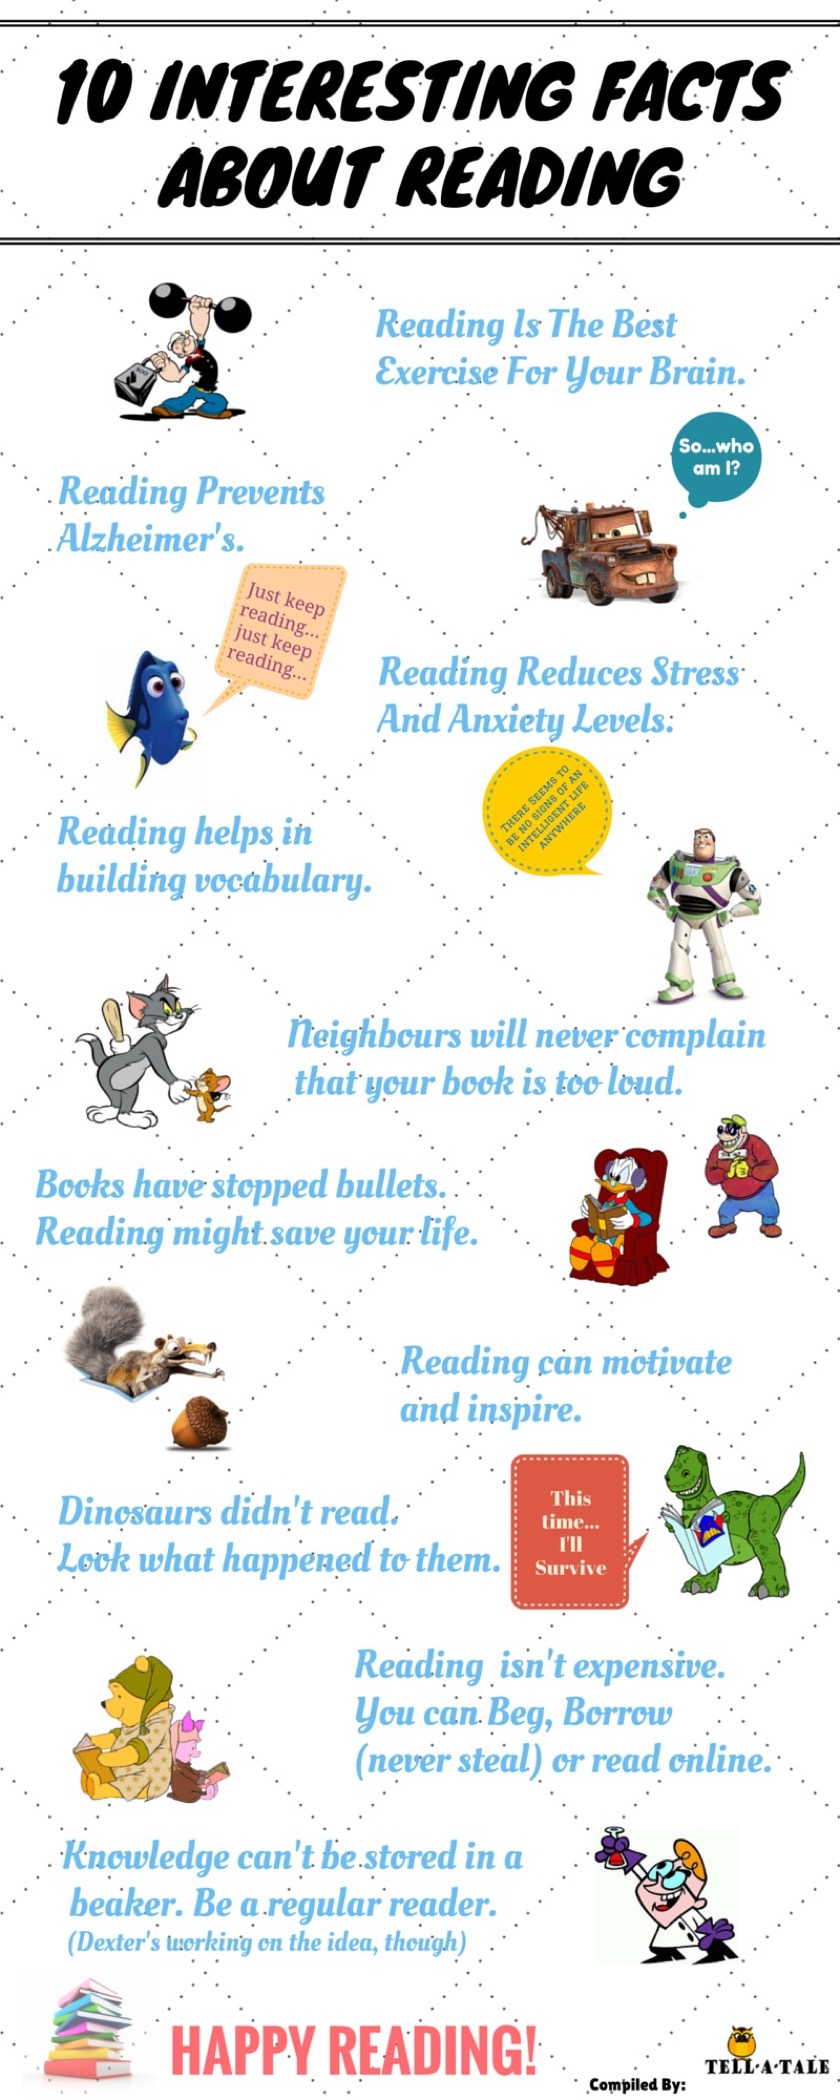 10 most interesting facts about reading #infographic